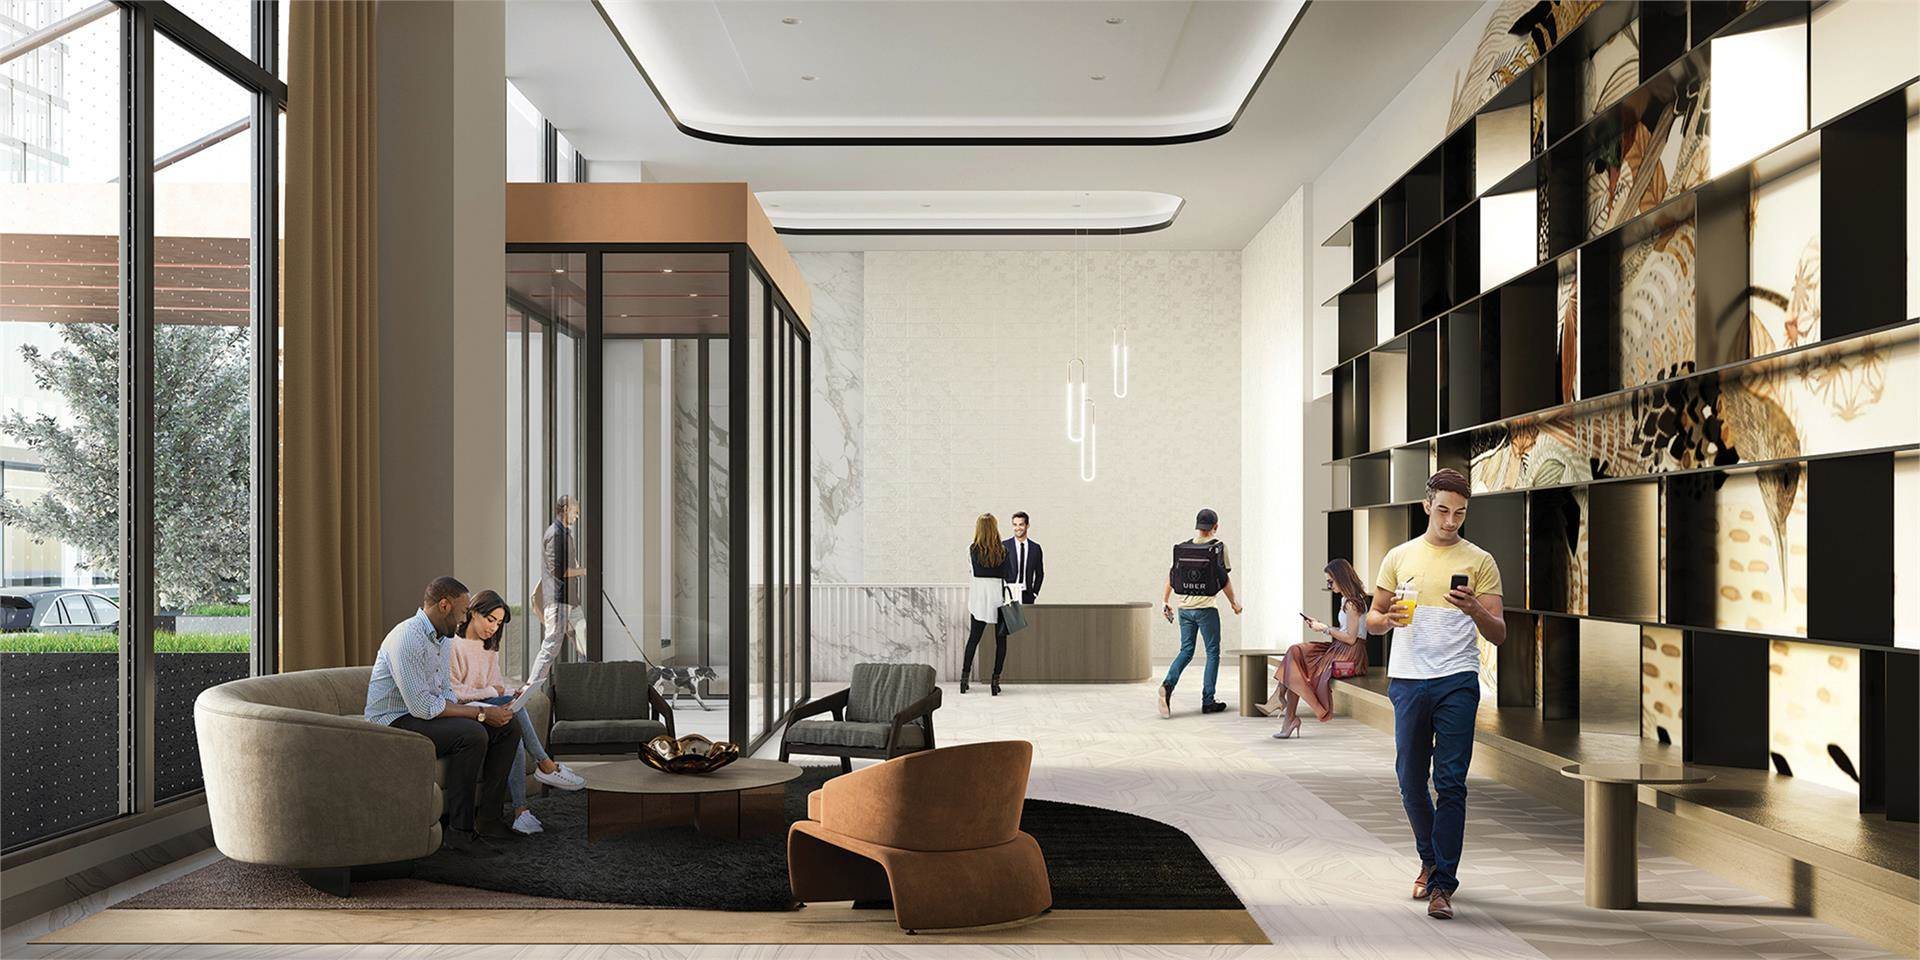 2020_02_05_04_02_47_artsyboutiquecondominiums_rendering7